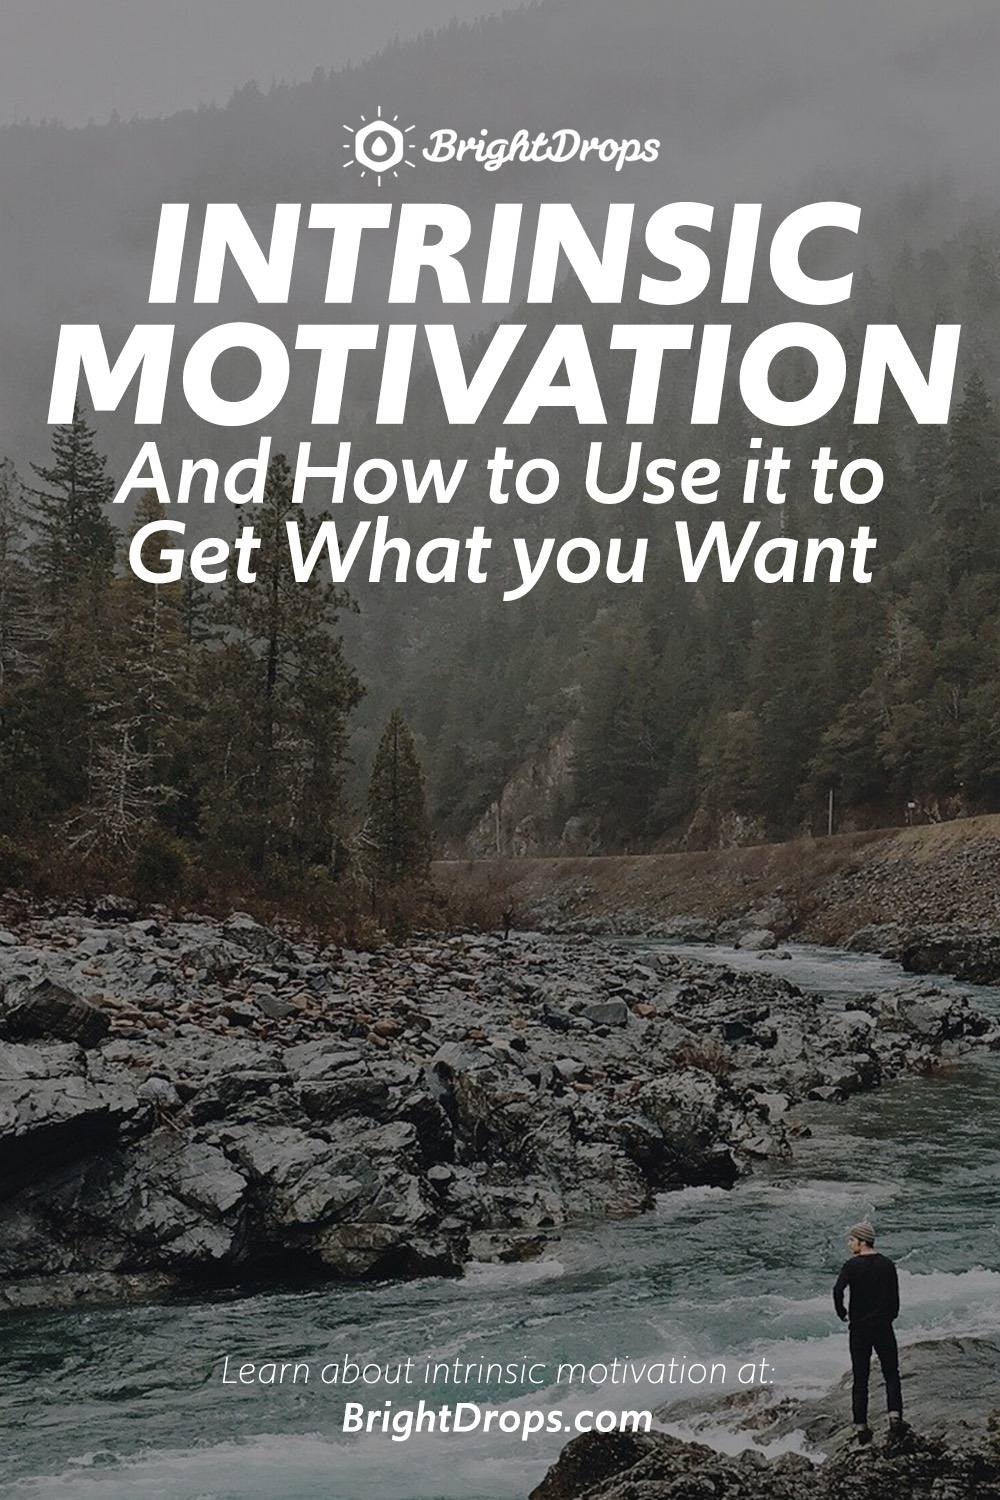 Intrinsic Motivation and How to Use It to Get What You Want